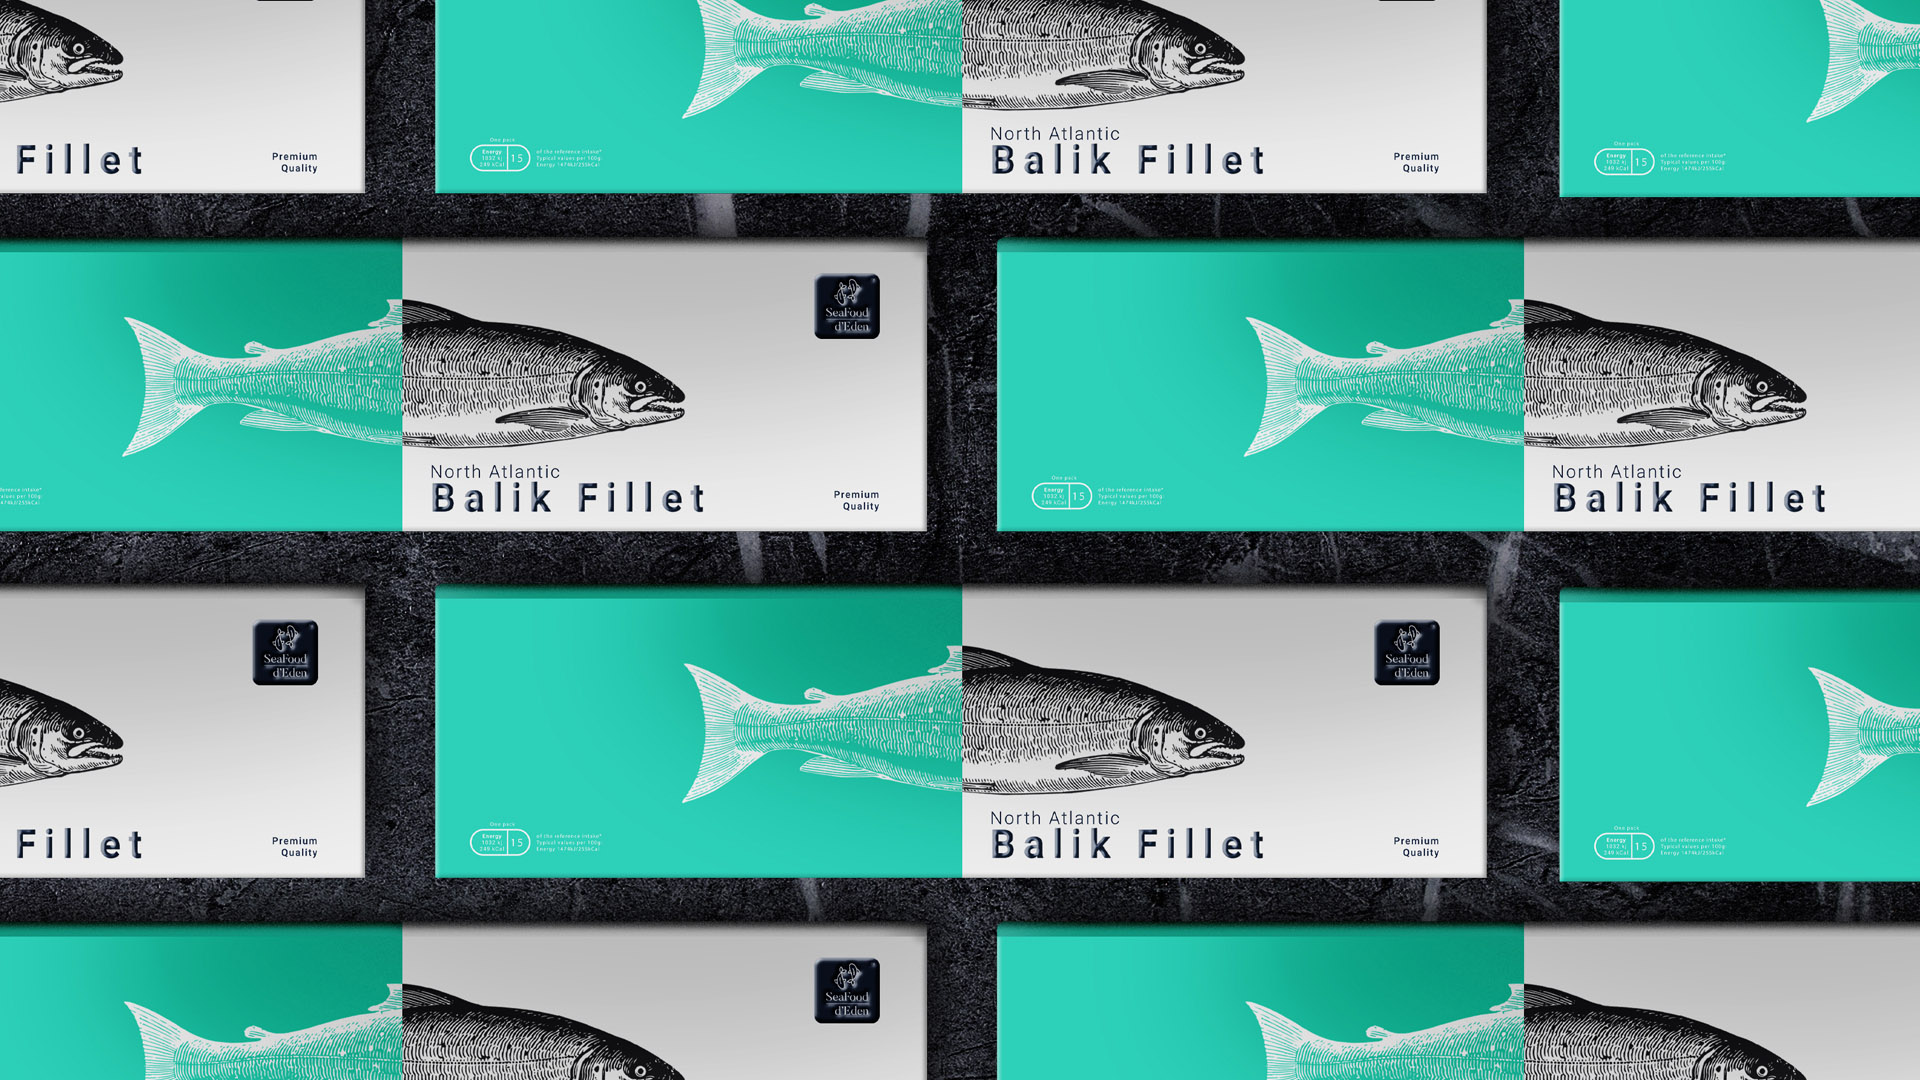 SeaFood d'Eden Brand Identity and Packaging Design for Seafood Products Line